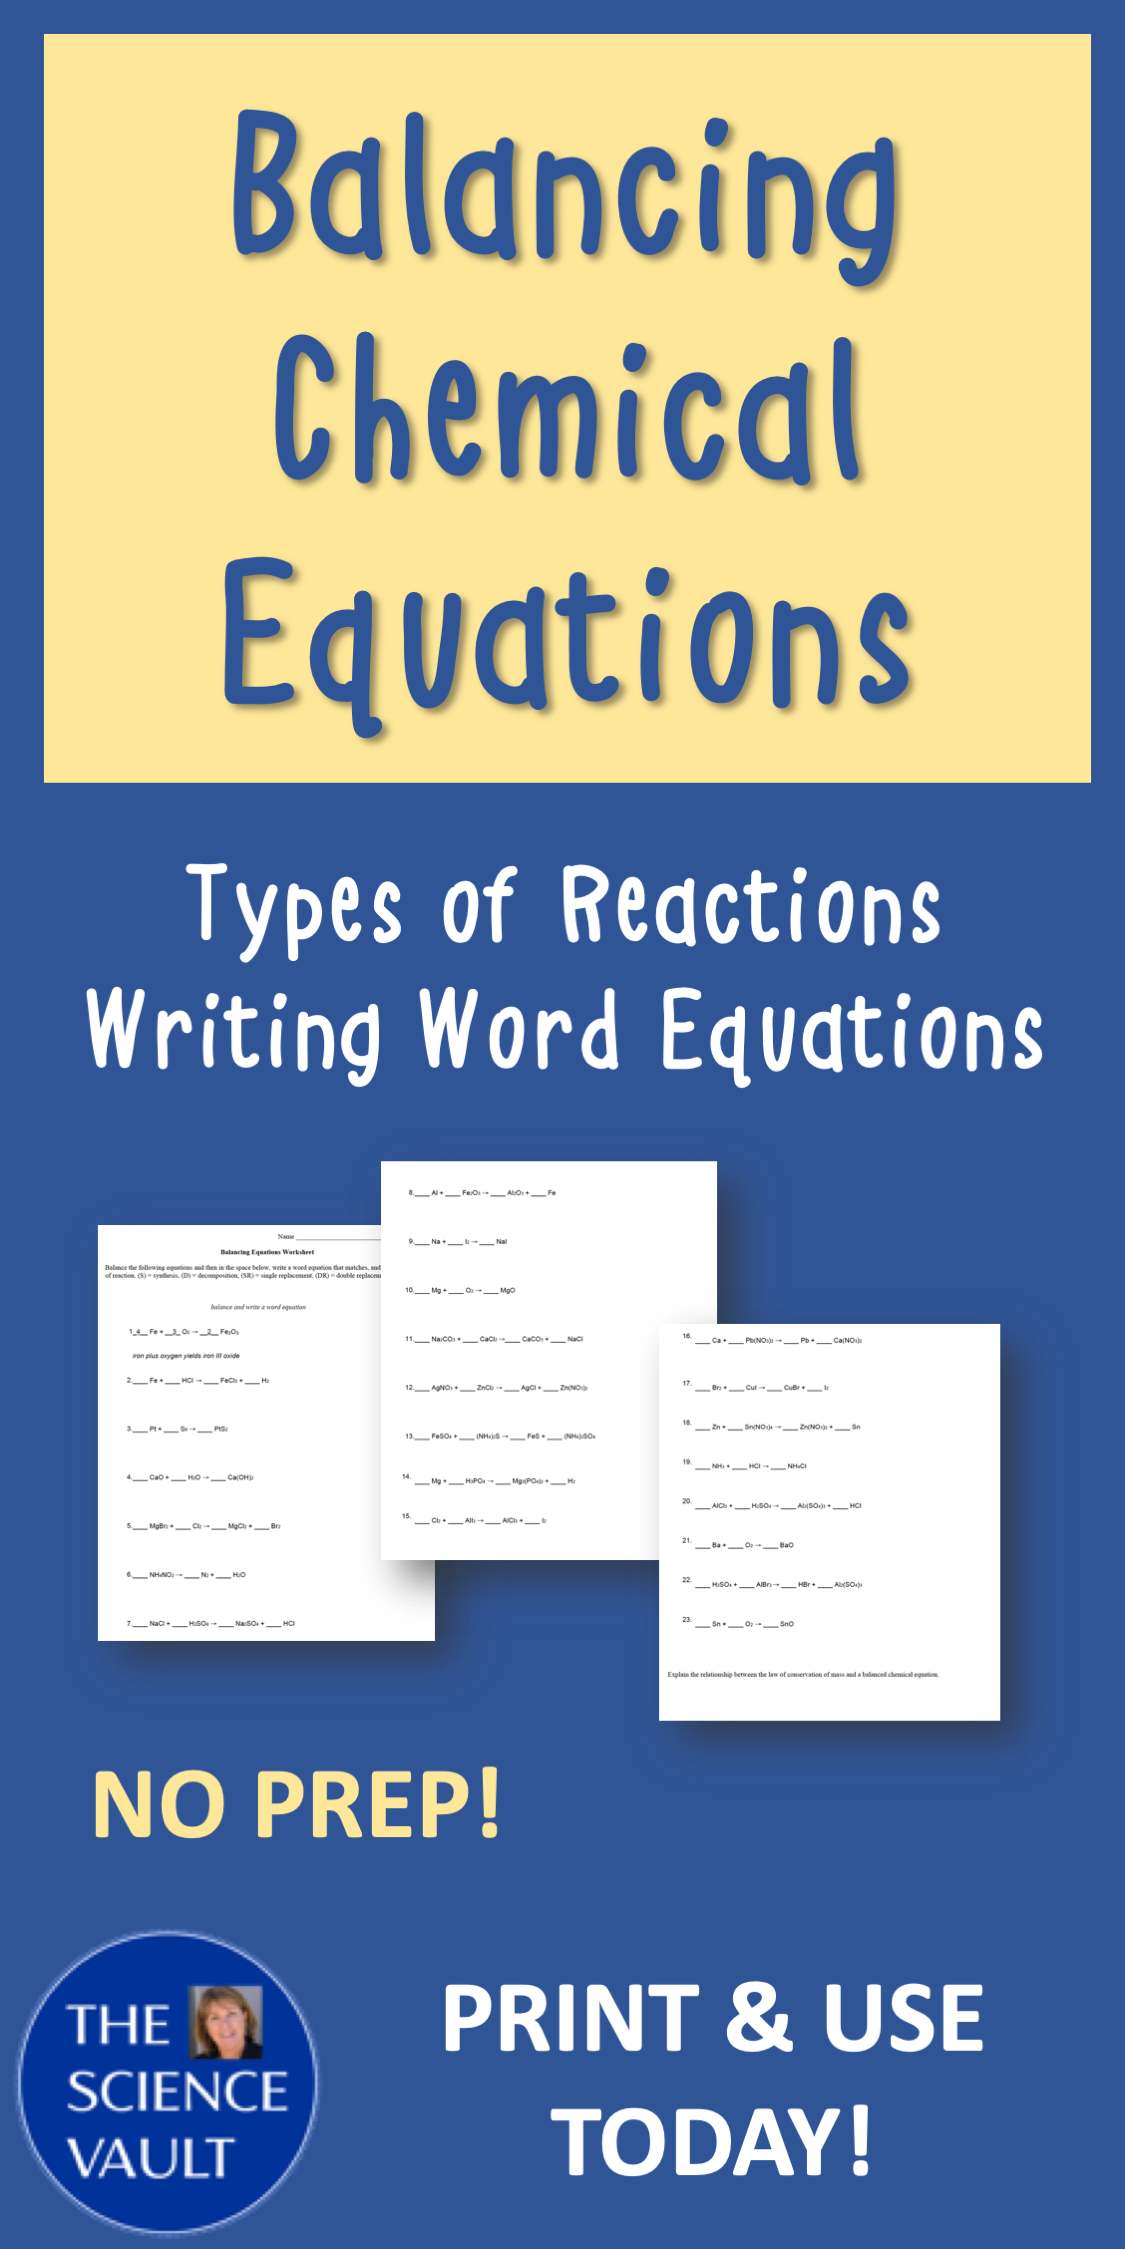 Balancing Chemical Equations Word Equations And Types Of